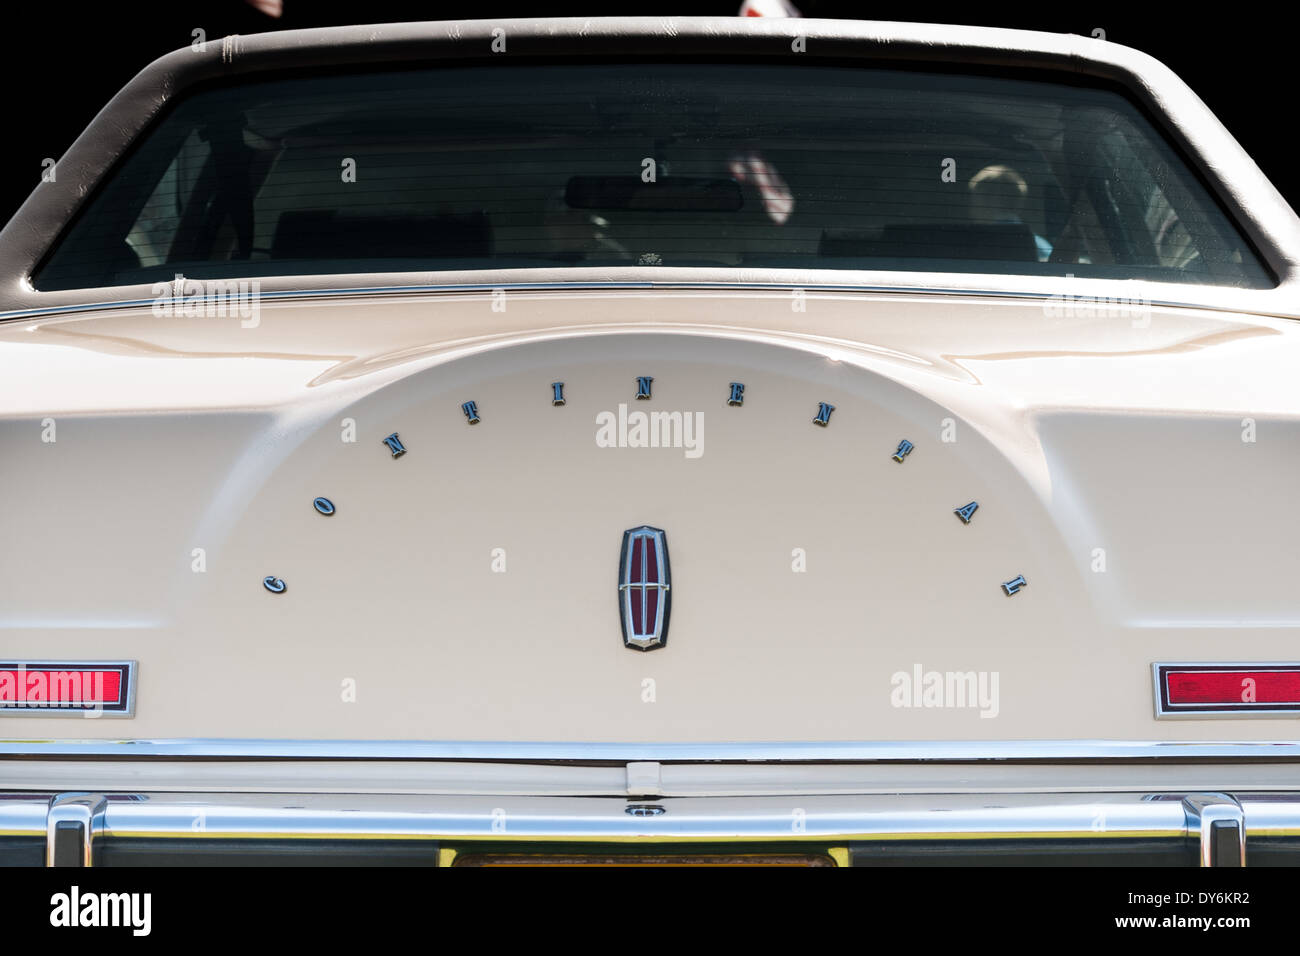 Lincoln Continental Trunk And Badge Detailing Stock Photo 68374070